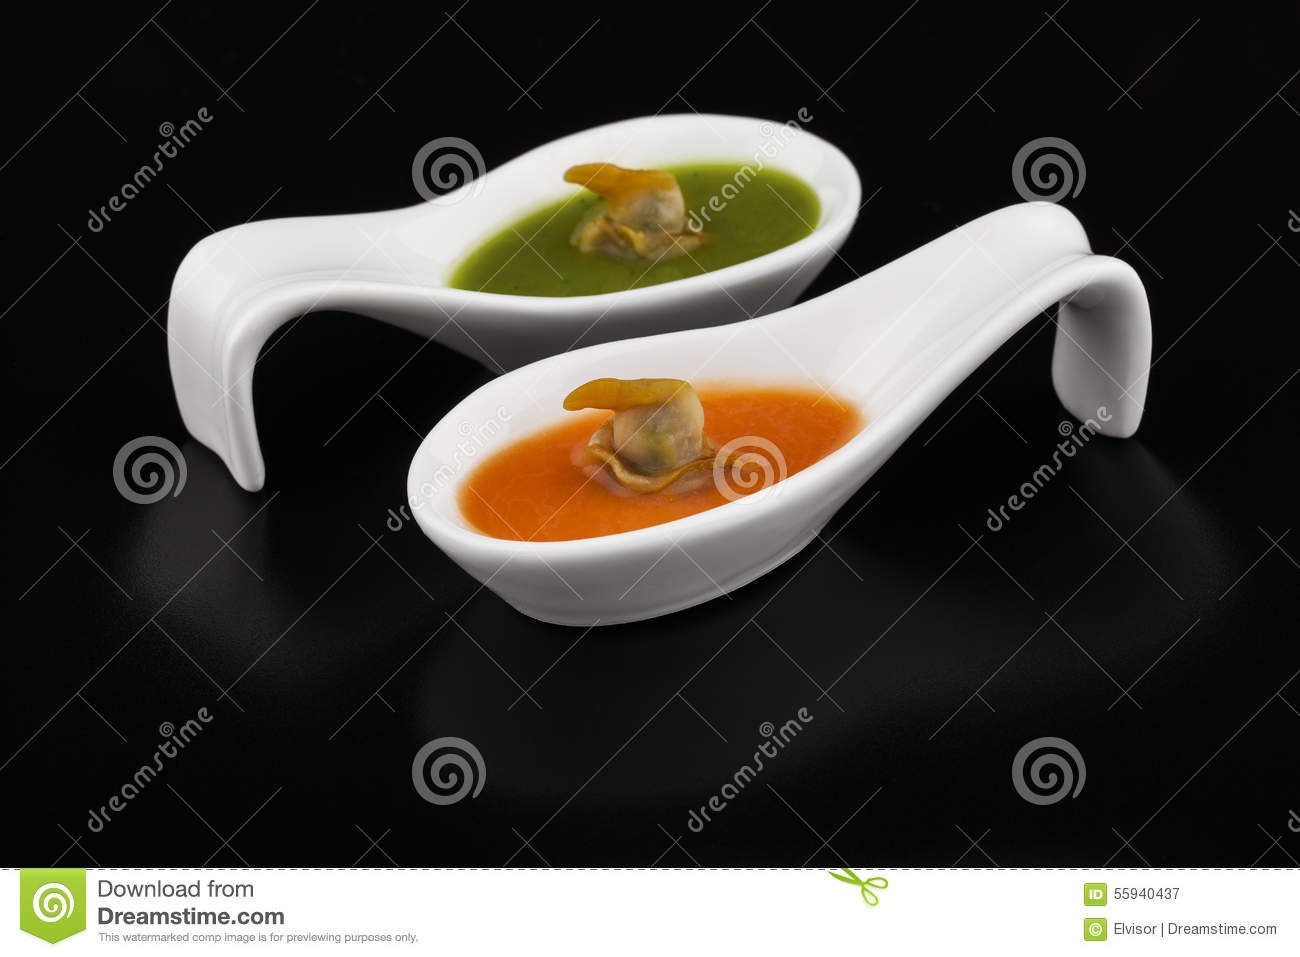 Cockles In Green And Red Vegetable Soup Stock Photo - Image: 55940437